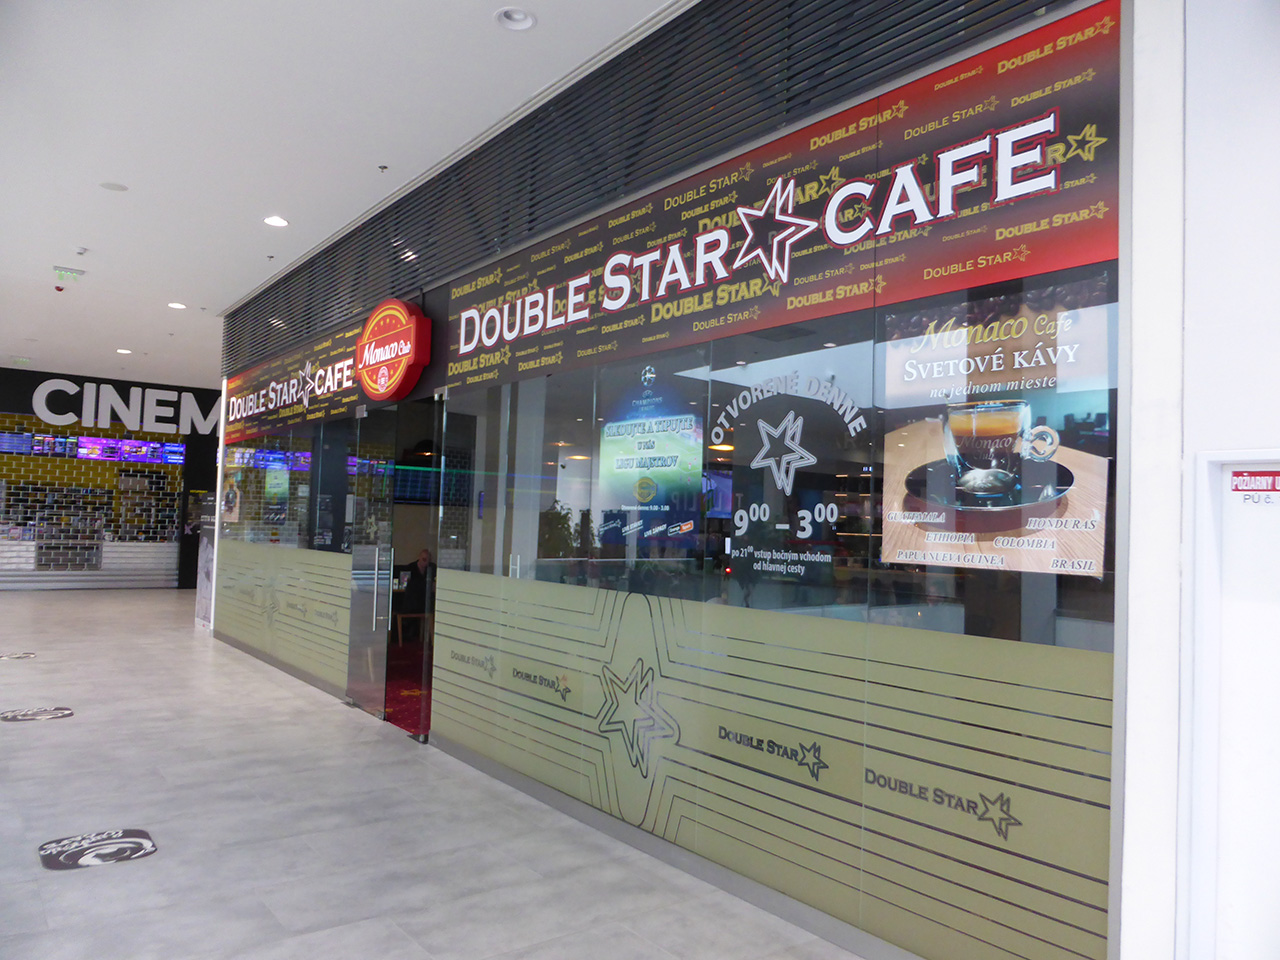 Double Star Cafe